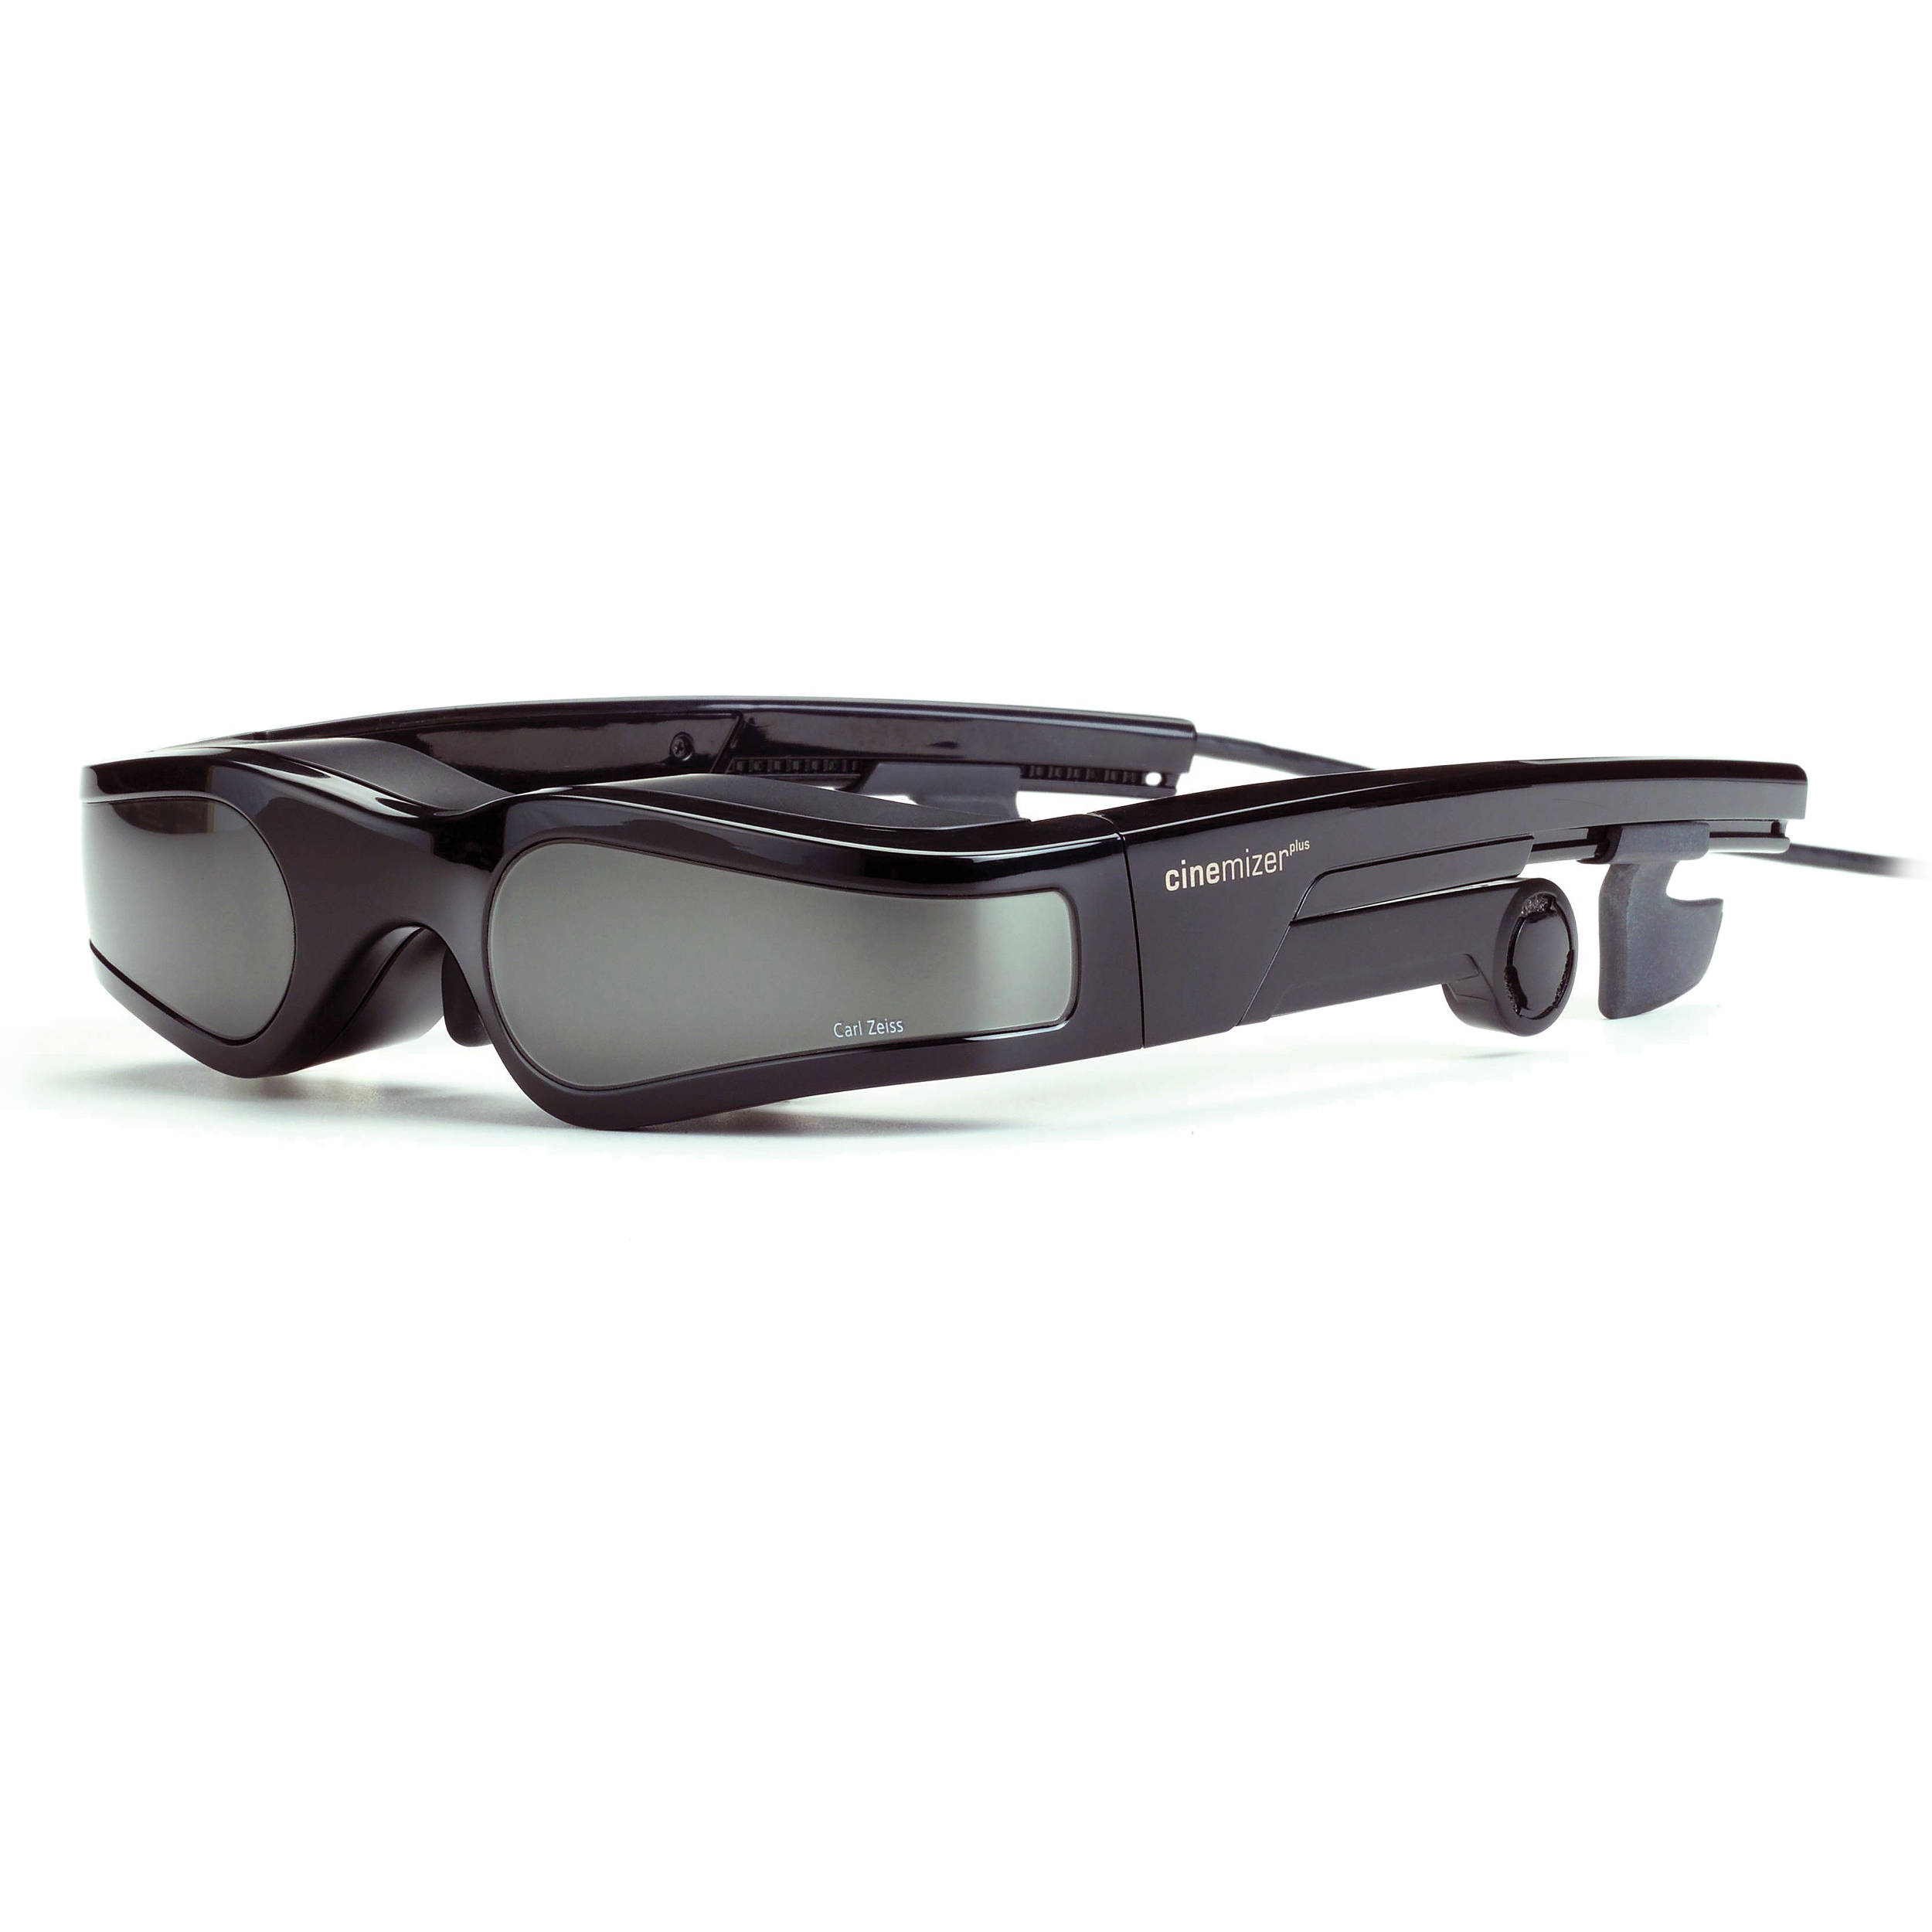 db025f31aab ZEISS cinemizer plus Video Eyewear (Black) 1393-ZCPK B H Photo TOMS and ZEISS  Introduce The Discoverist Eyewear Collection